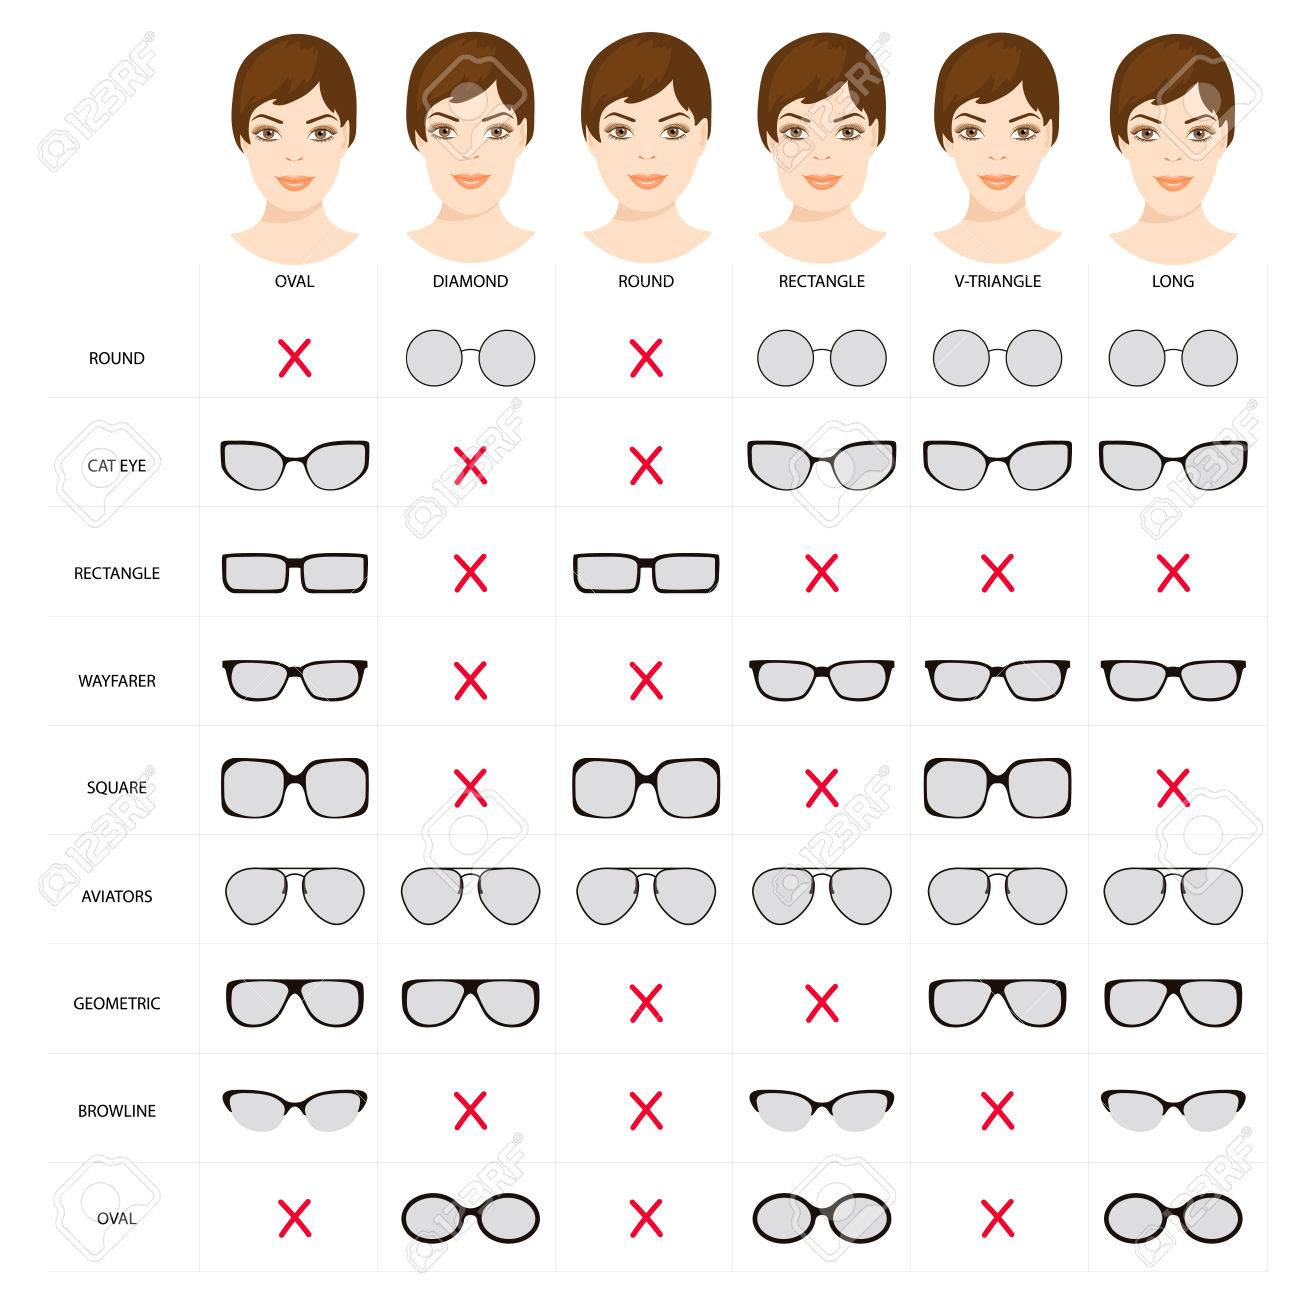 Right Glasses For Women S Face Shape. Stock Vector Illustration ...